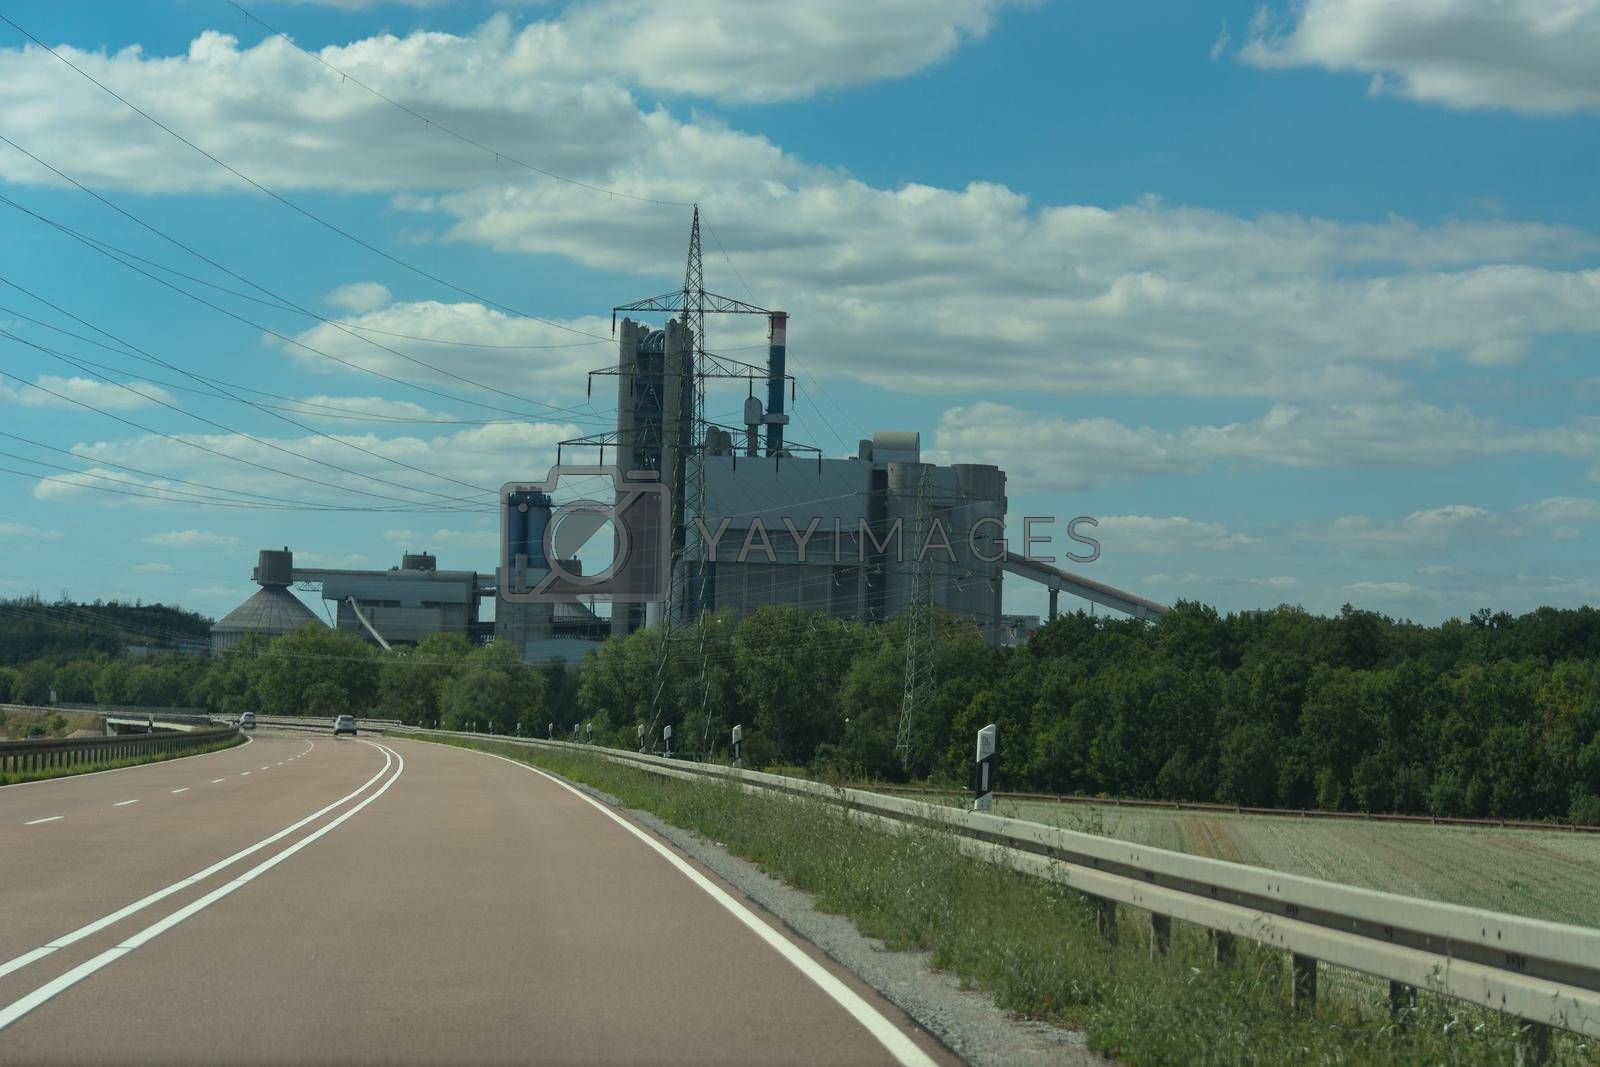 Royalty free image of The road to the nuclear power plant by JFsPic